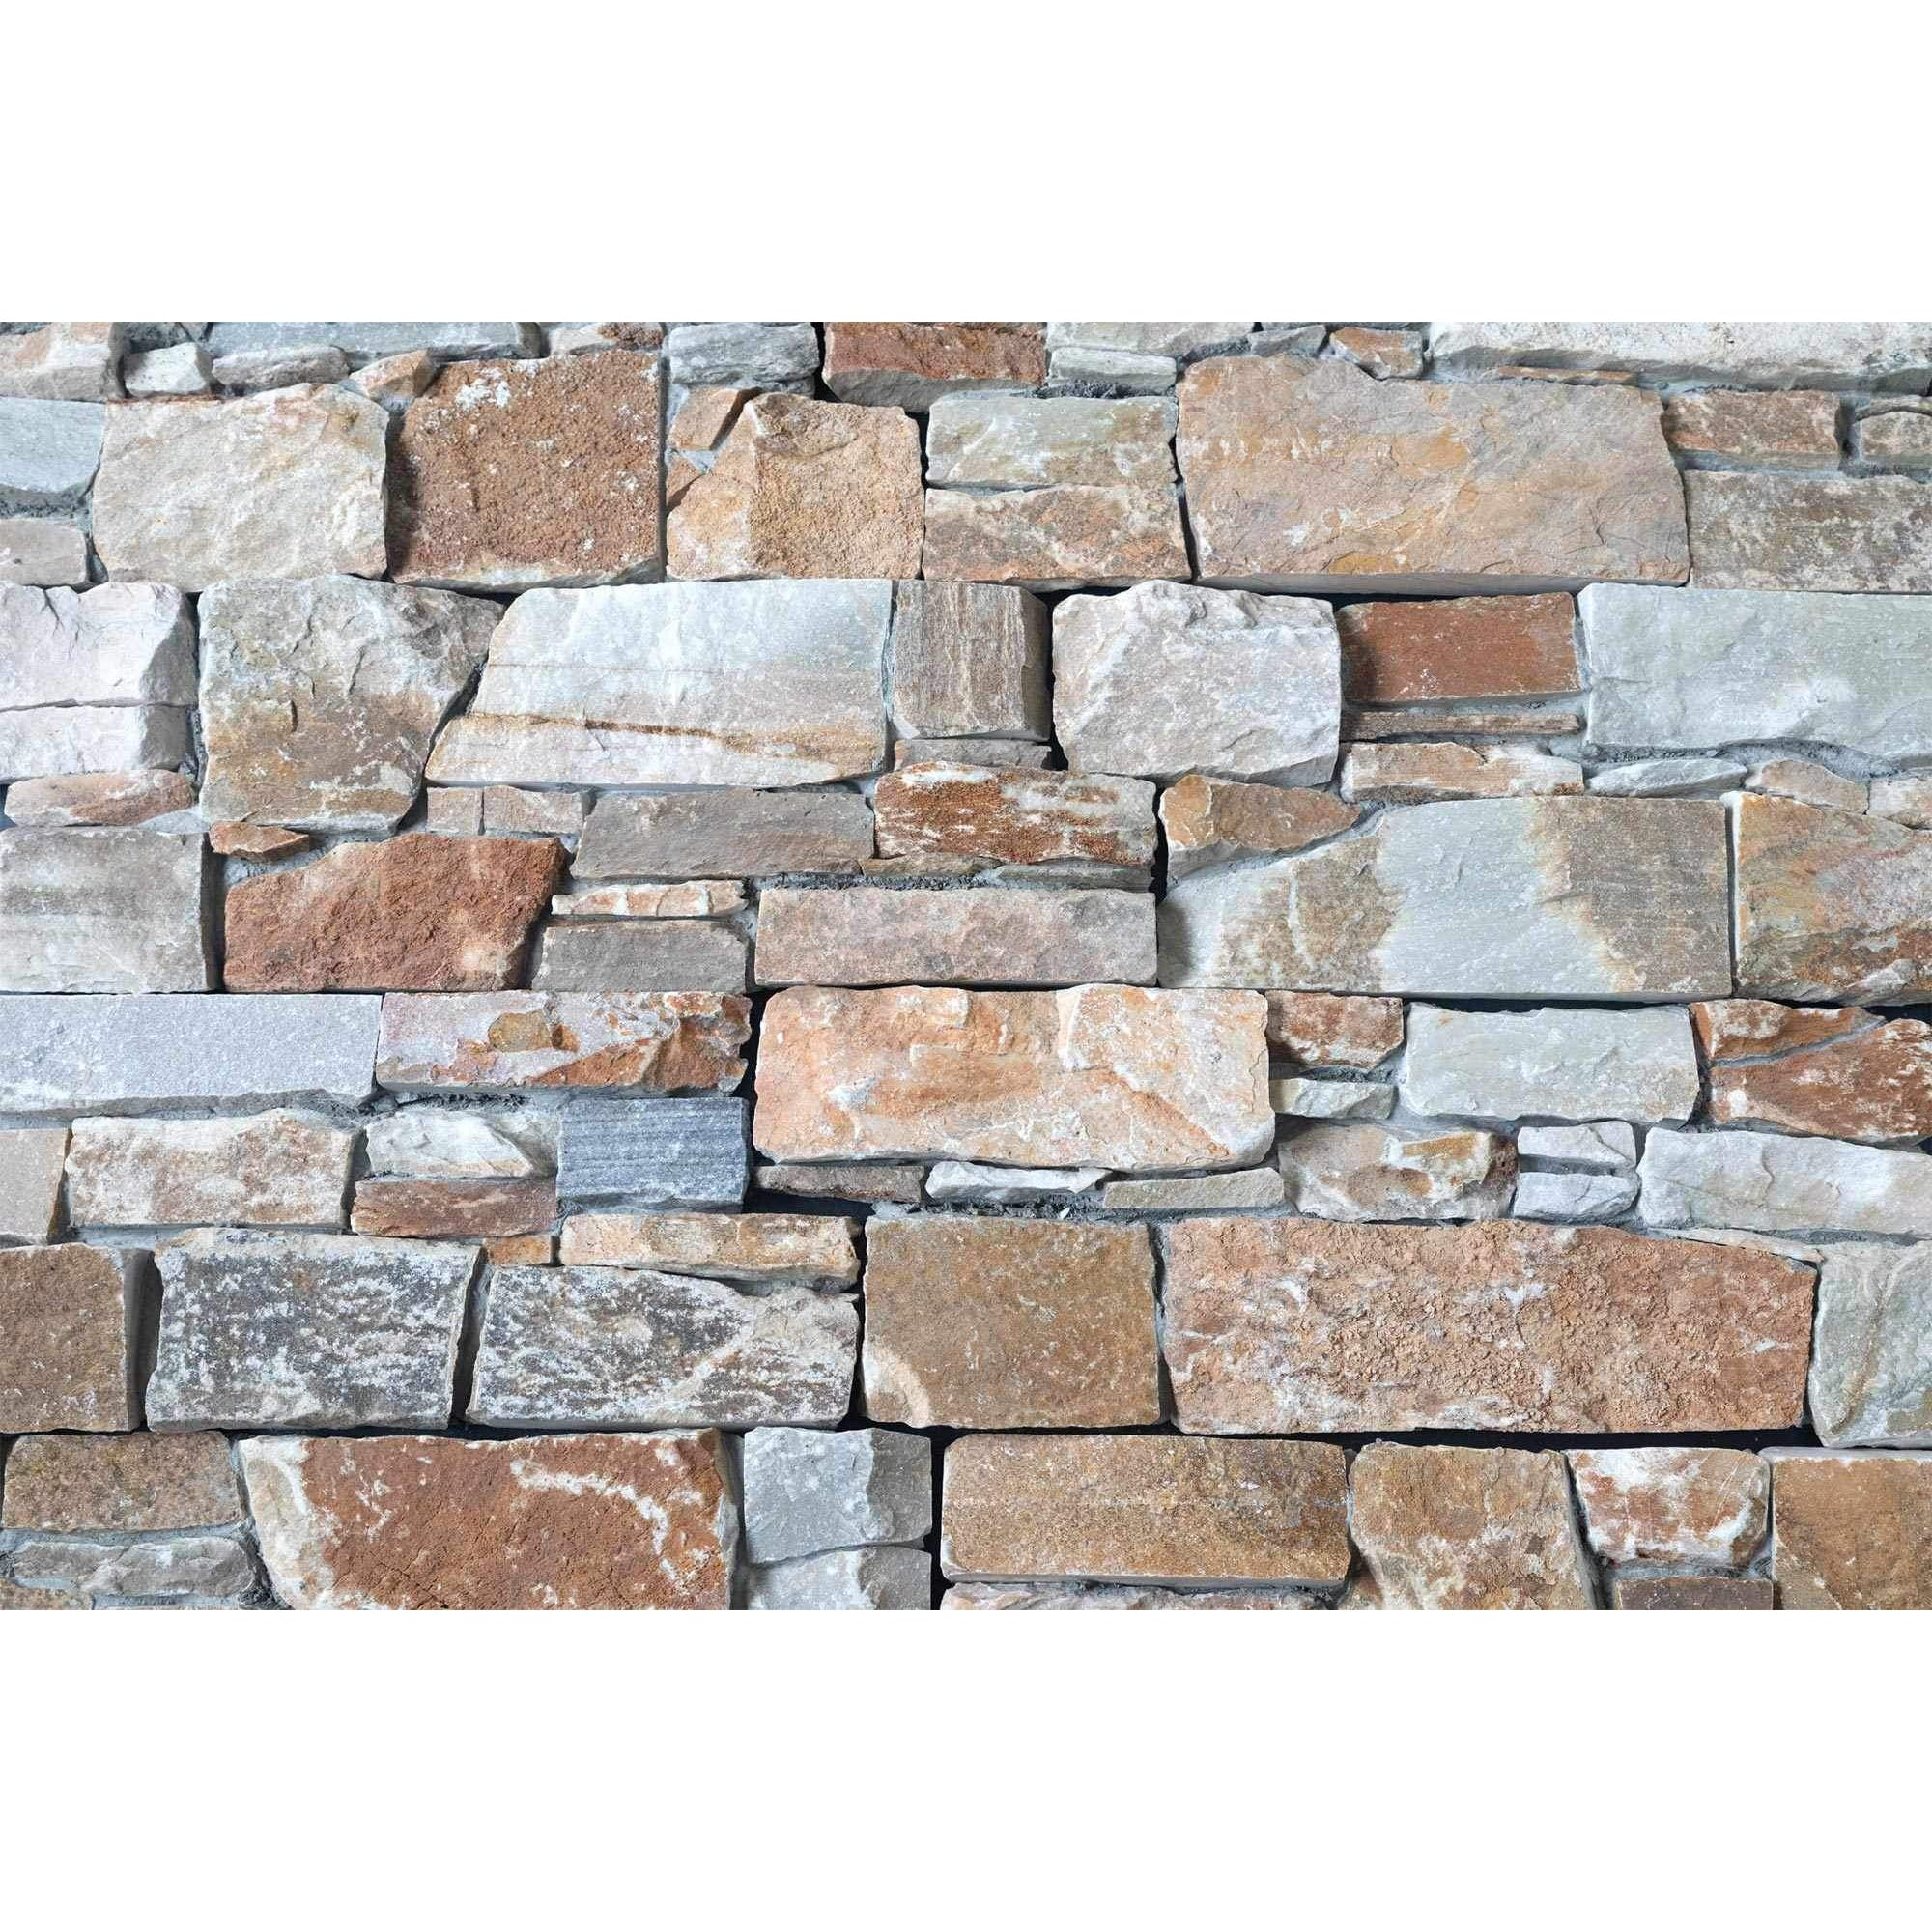 Natural Ledgestone Feature Wall Cladding Panels - Urban Brown